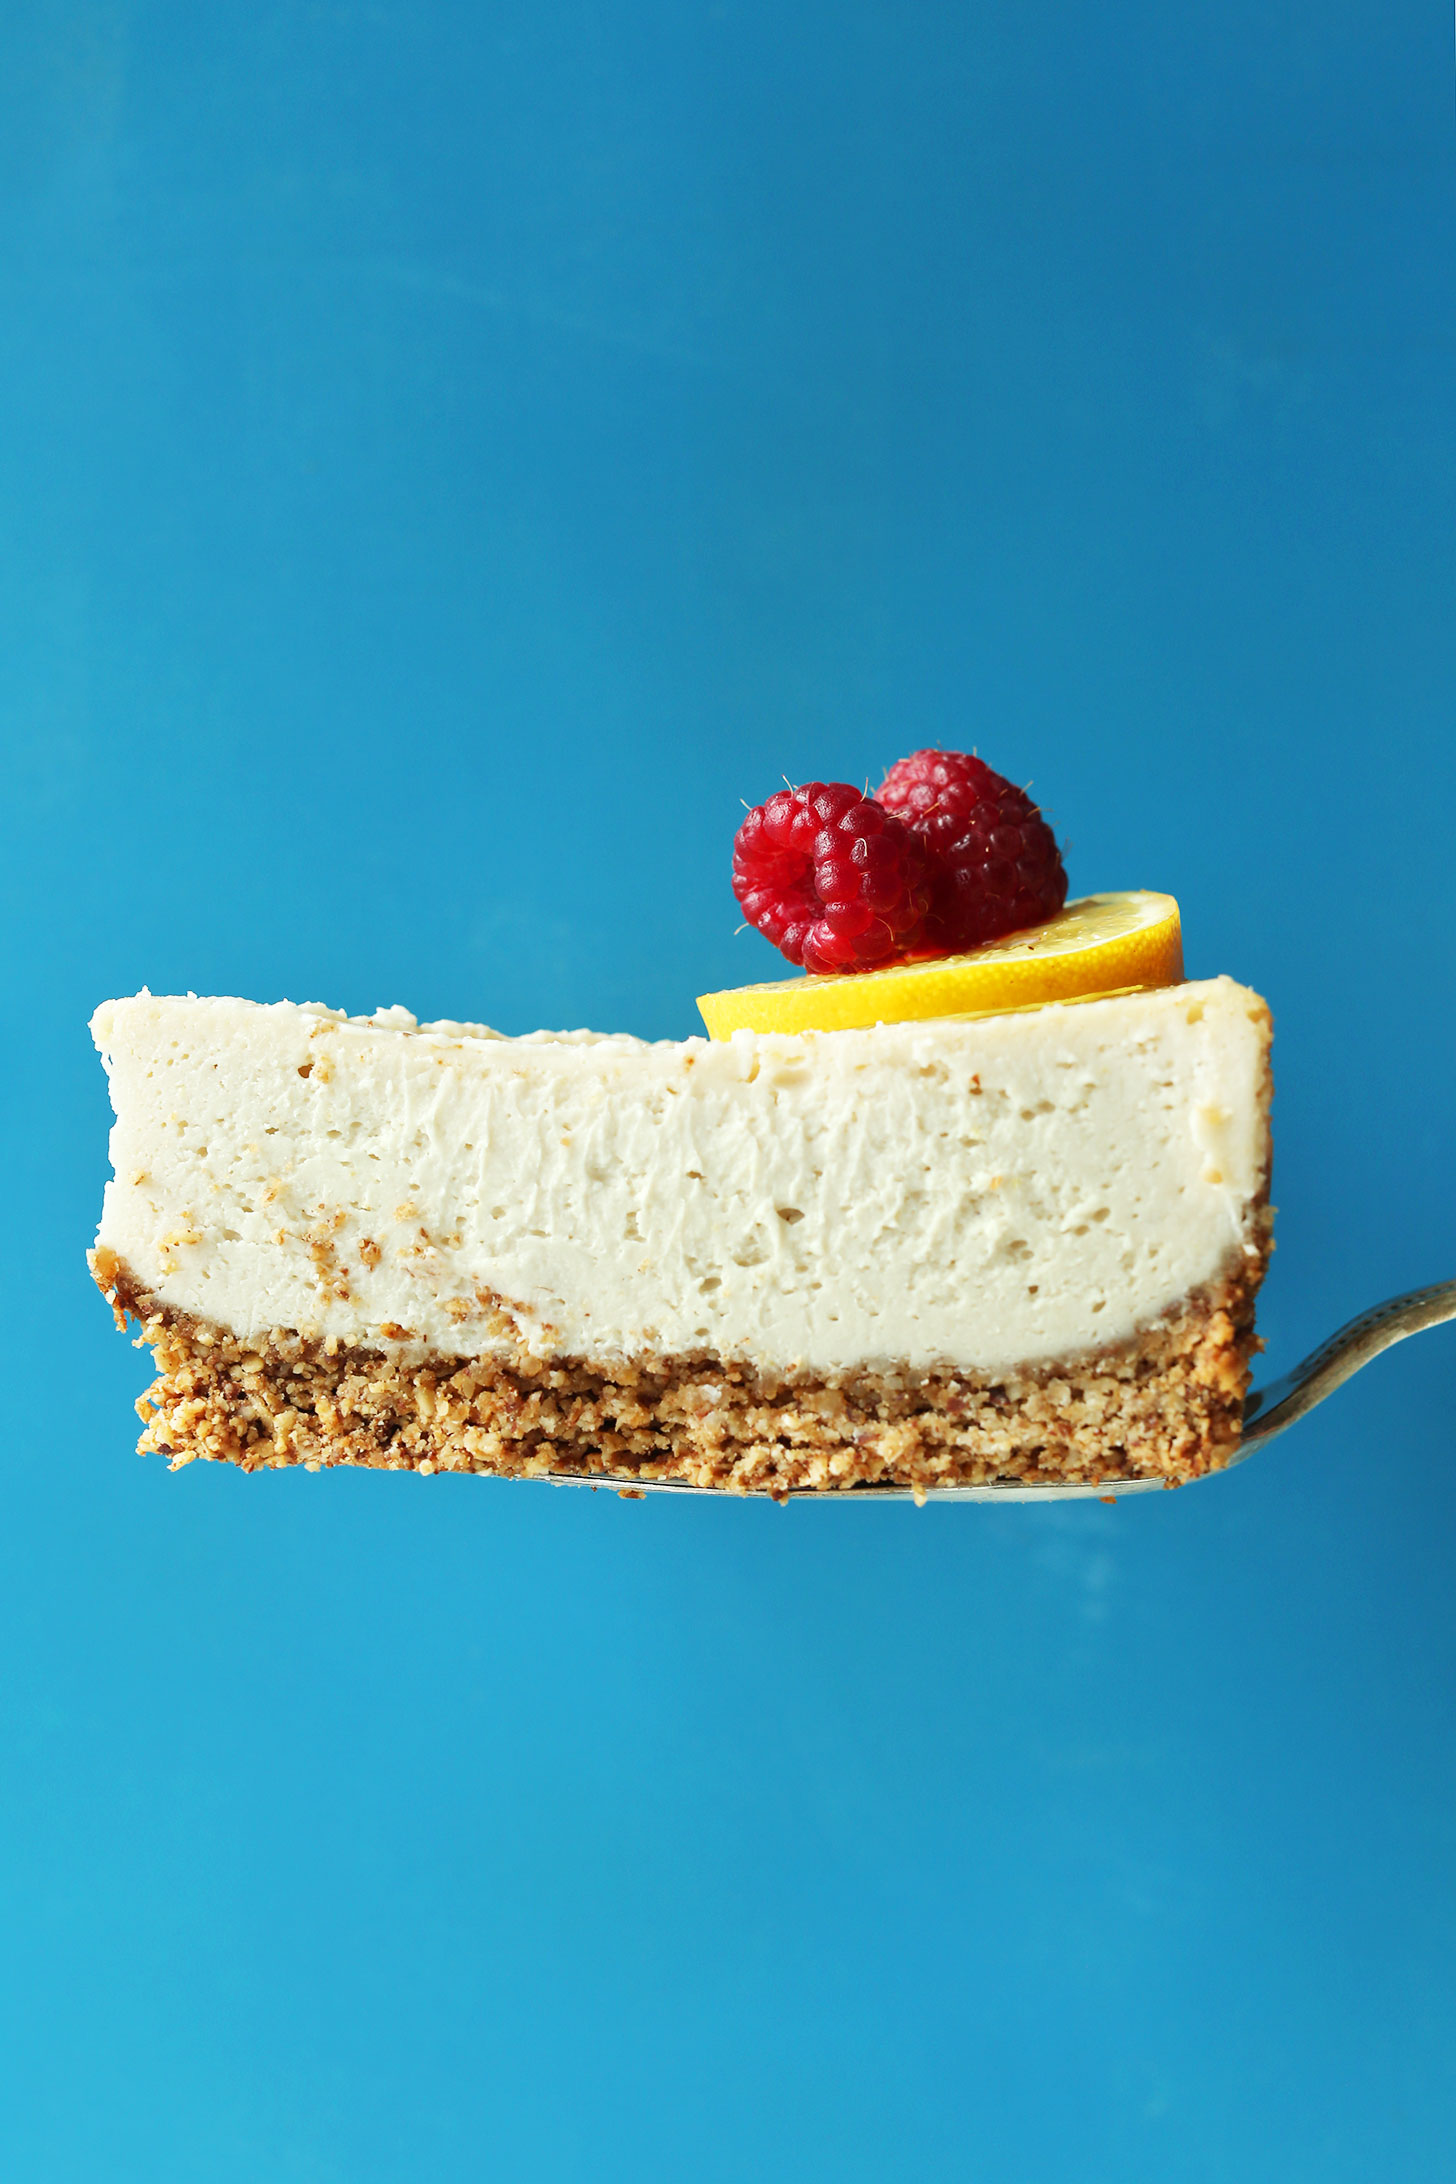 Recipe for baked cream cheese cake